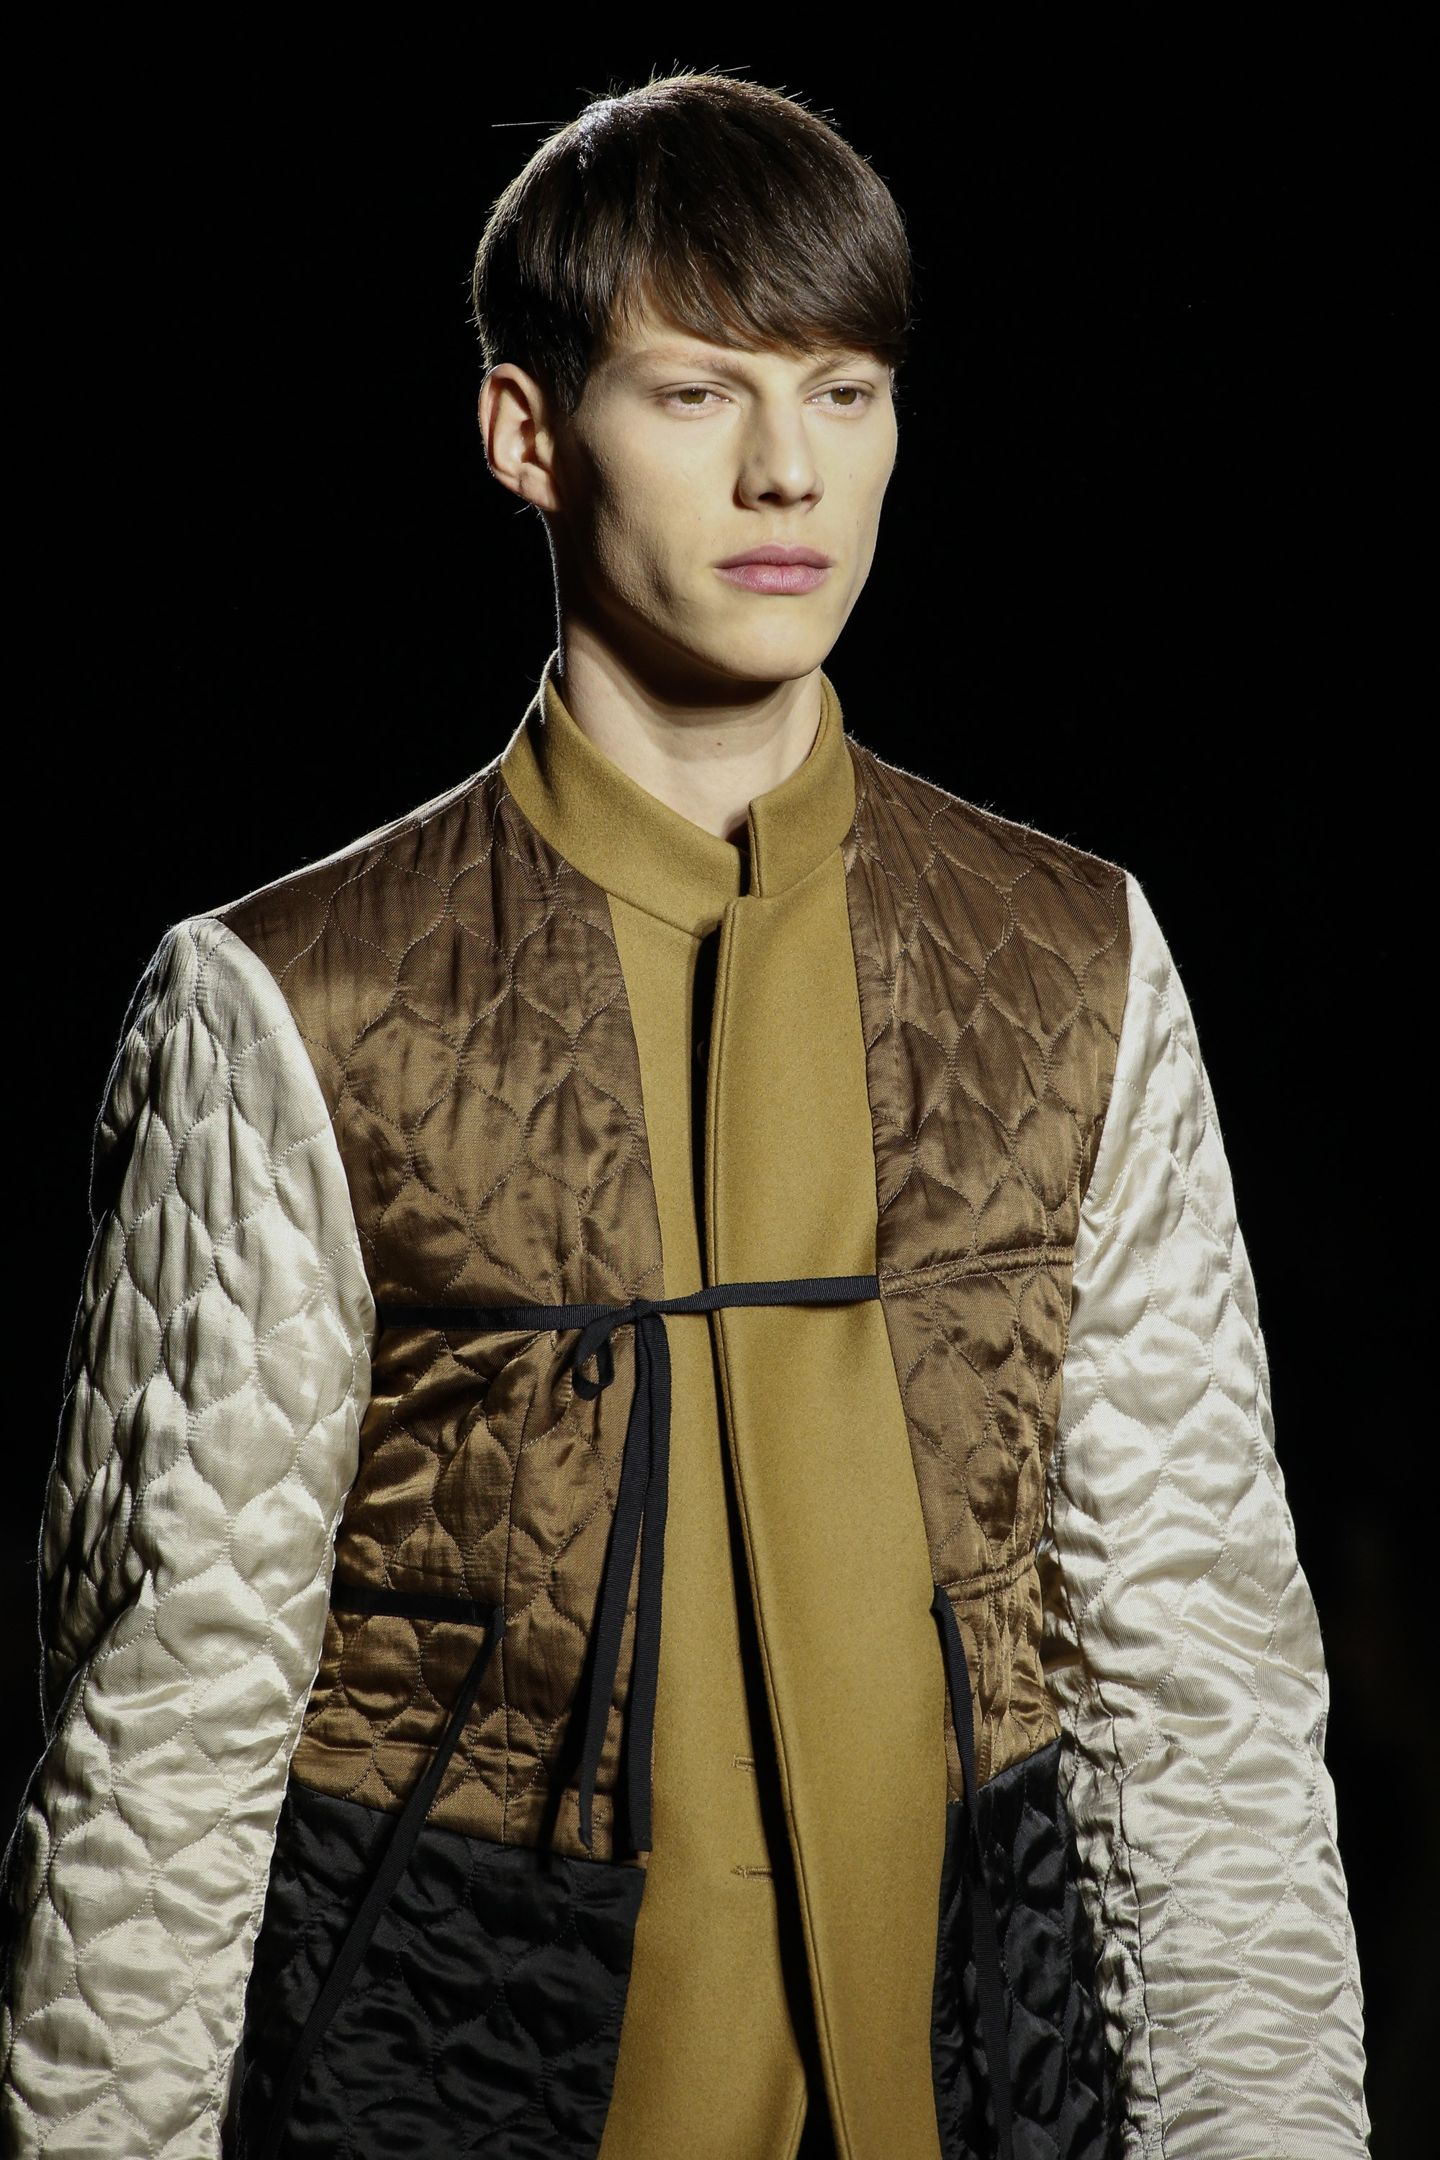 A simple jacket worn on the reserve to reveal a quilted lining which at the same time evokes Japanese military influences